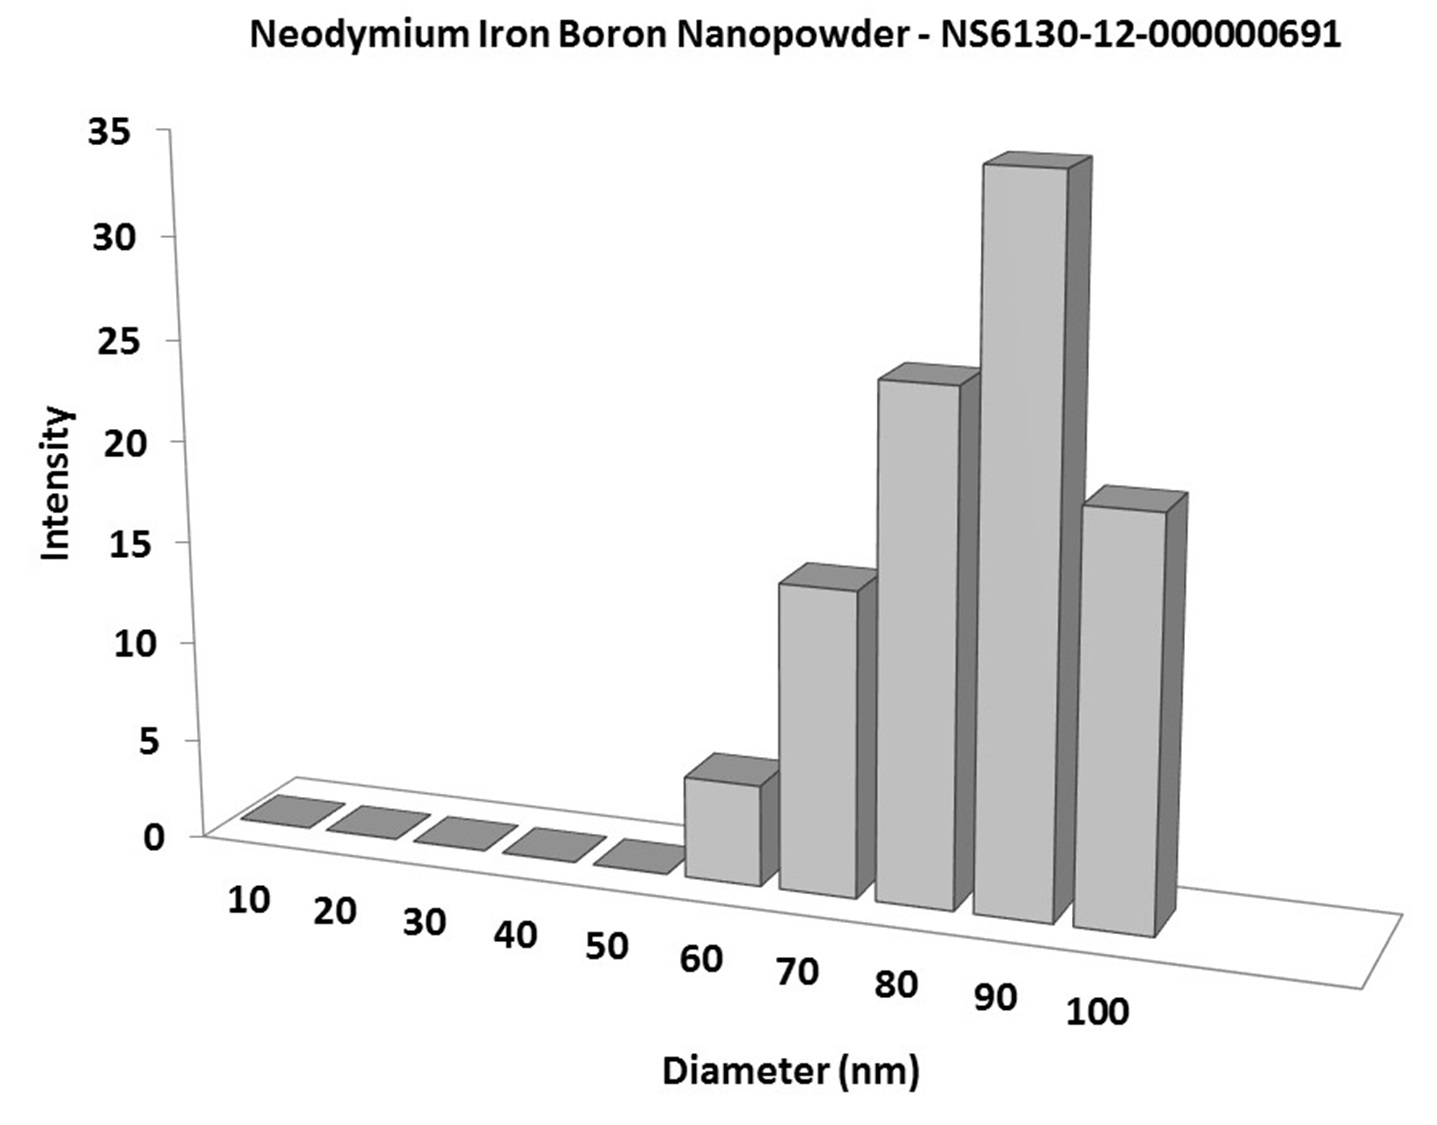 Particles Size Analysis - NdFeB Nanoparticles